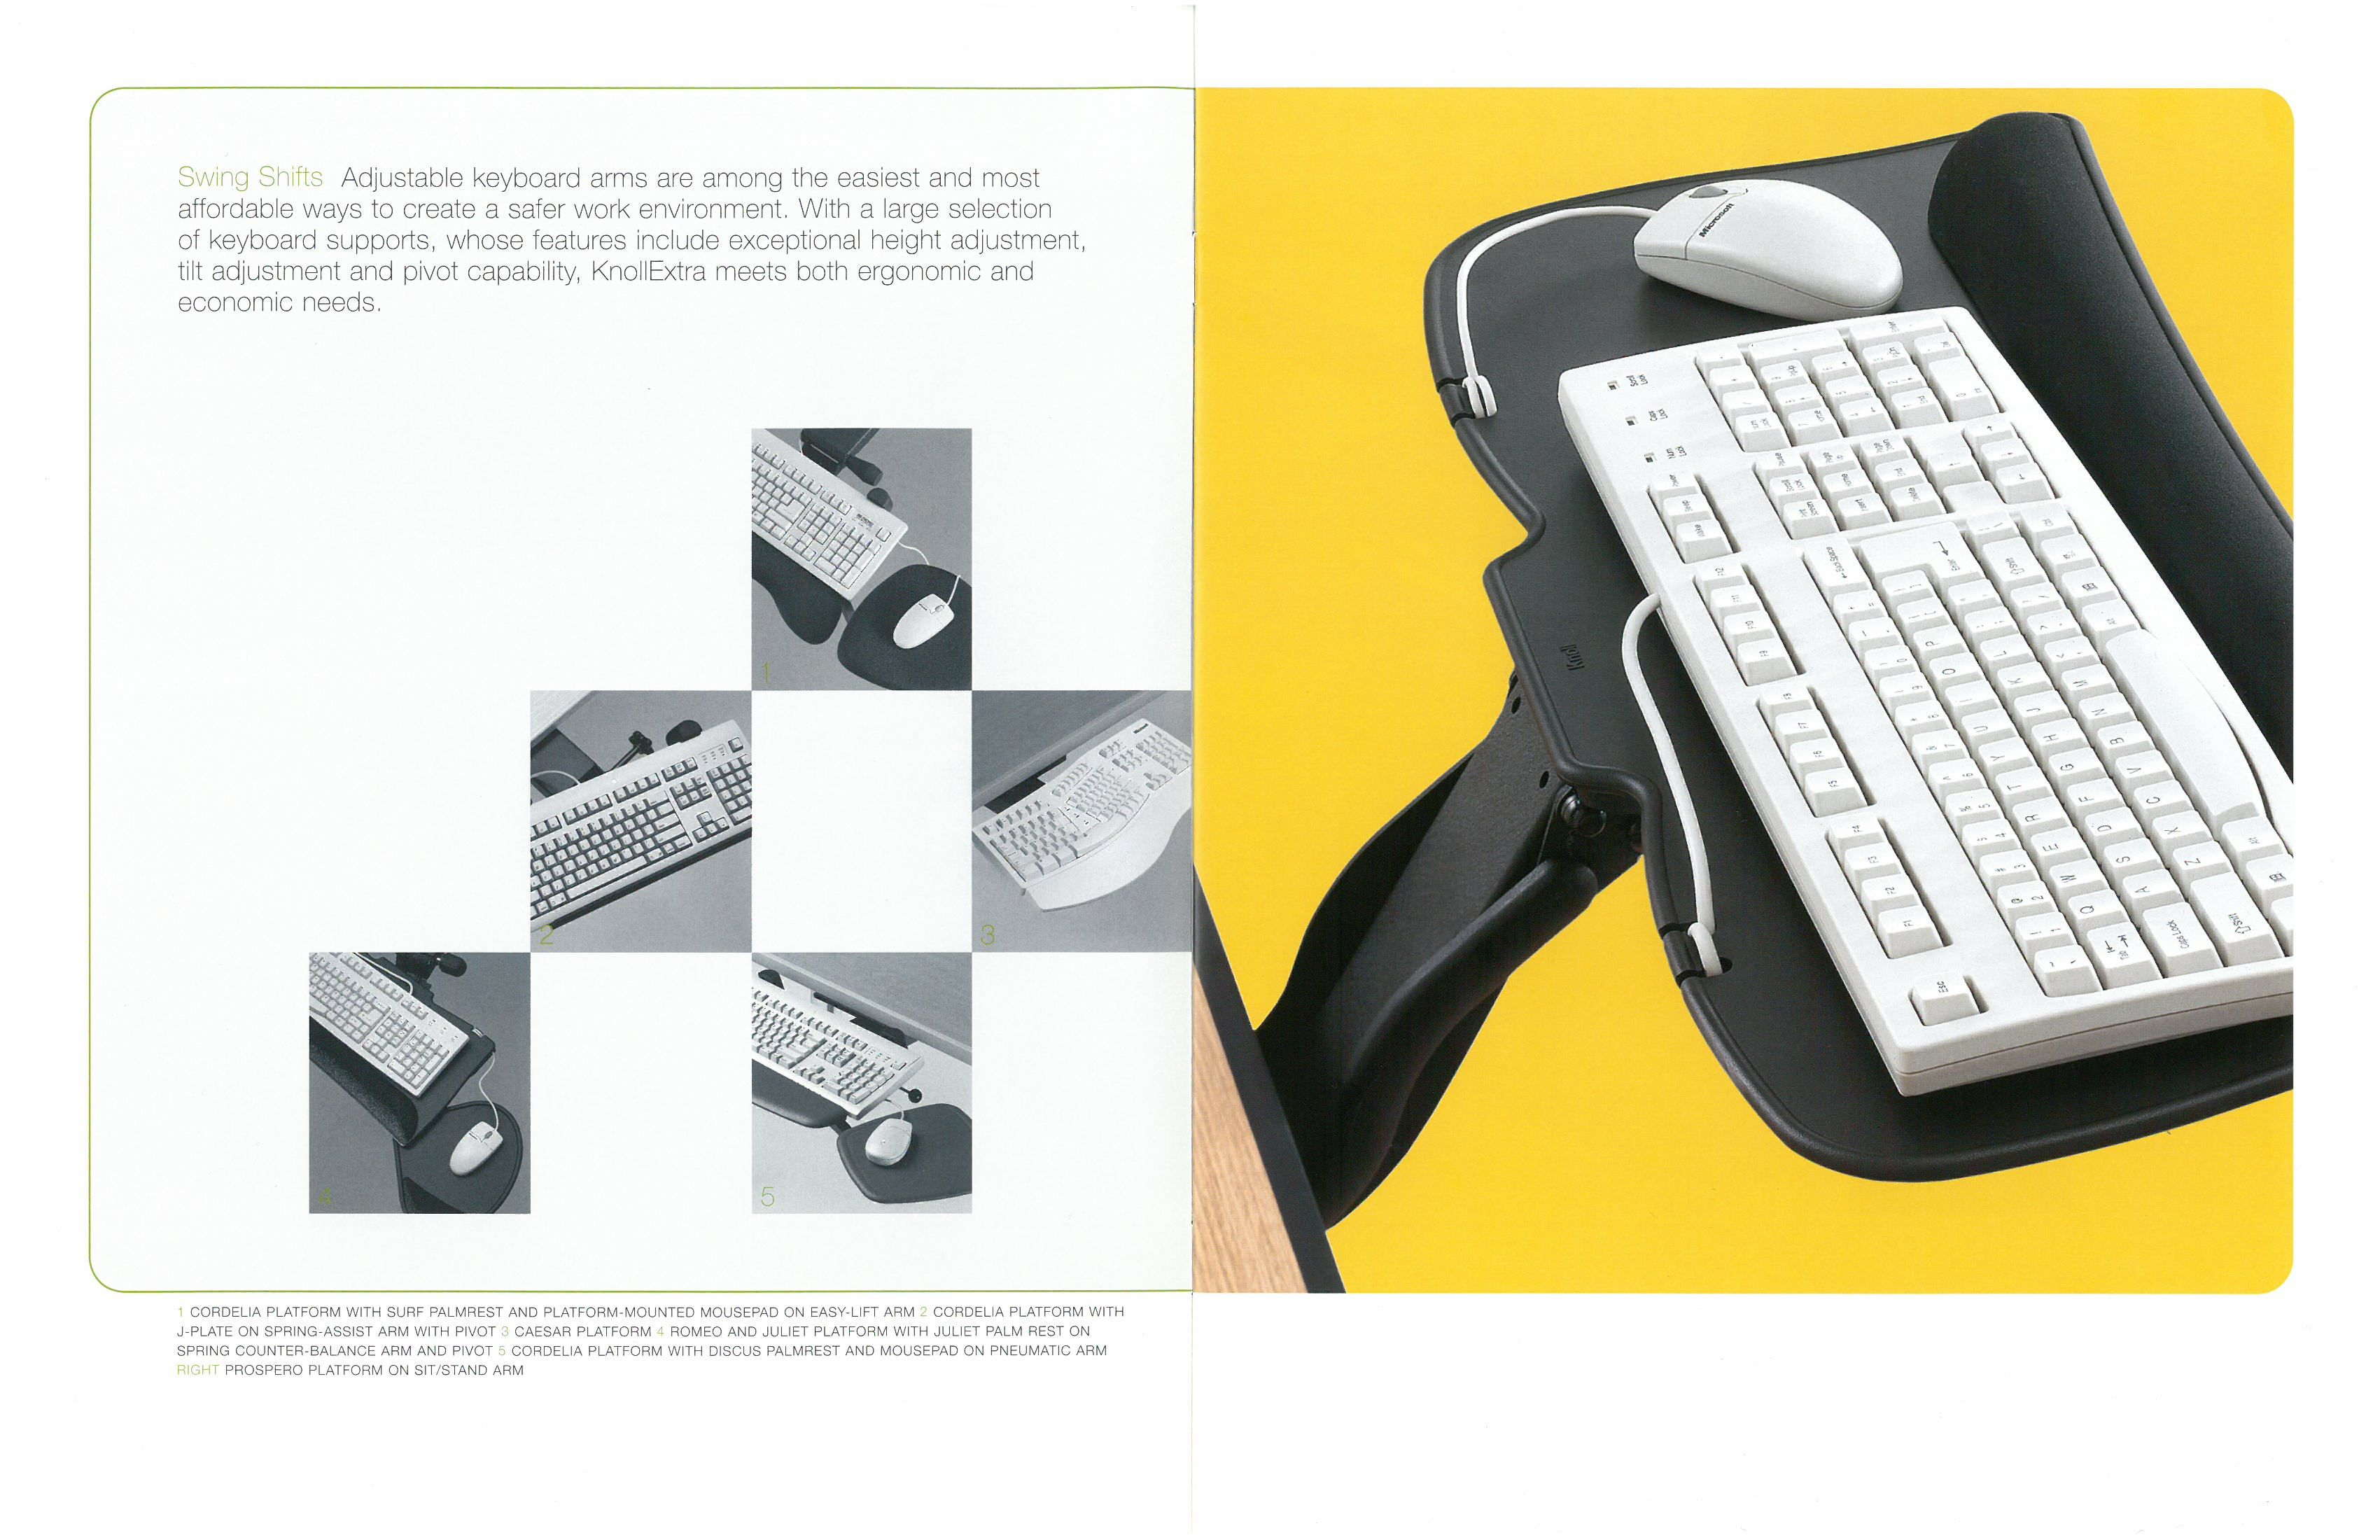 In the 90s, our first sit/stand keyboard tray, Swing Shift